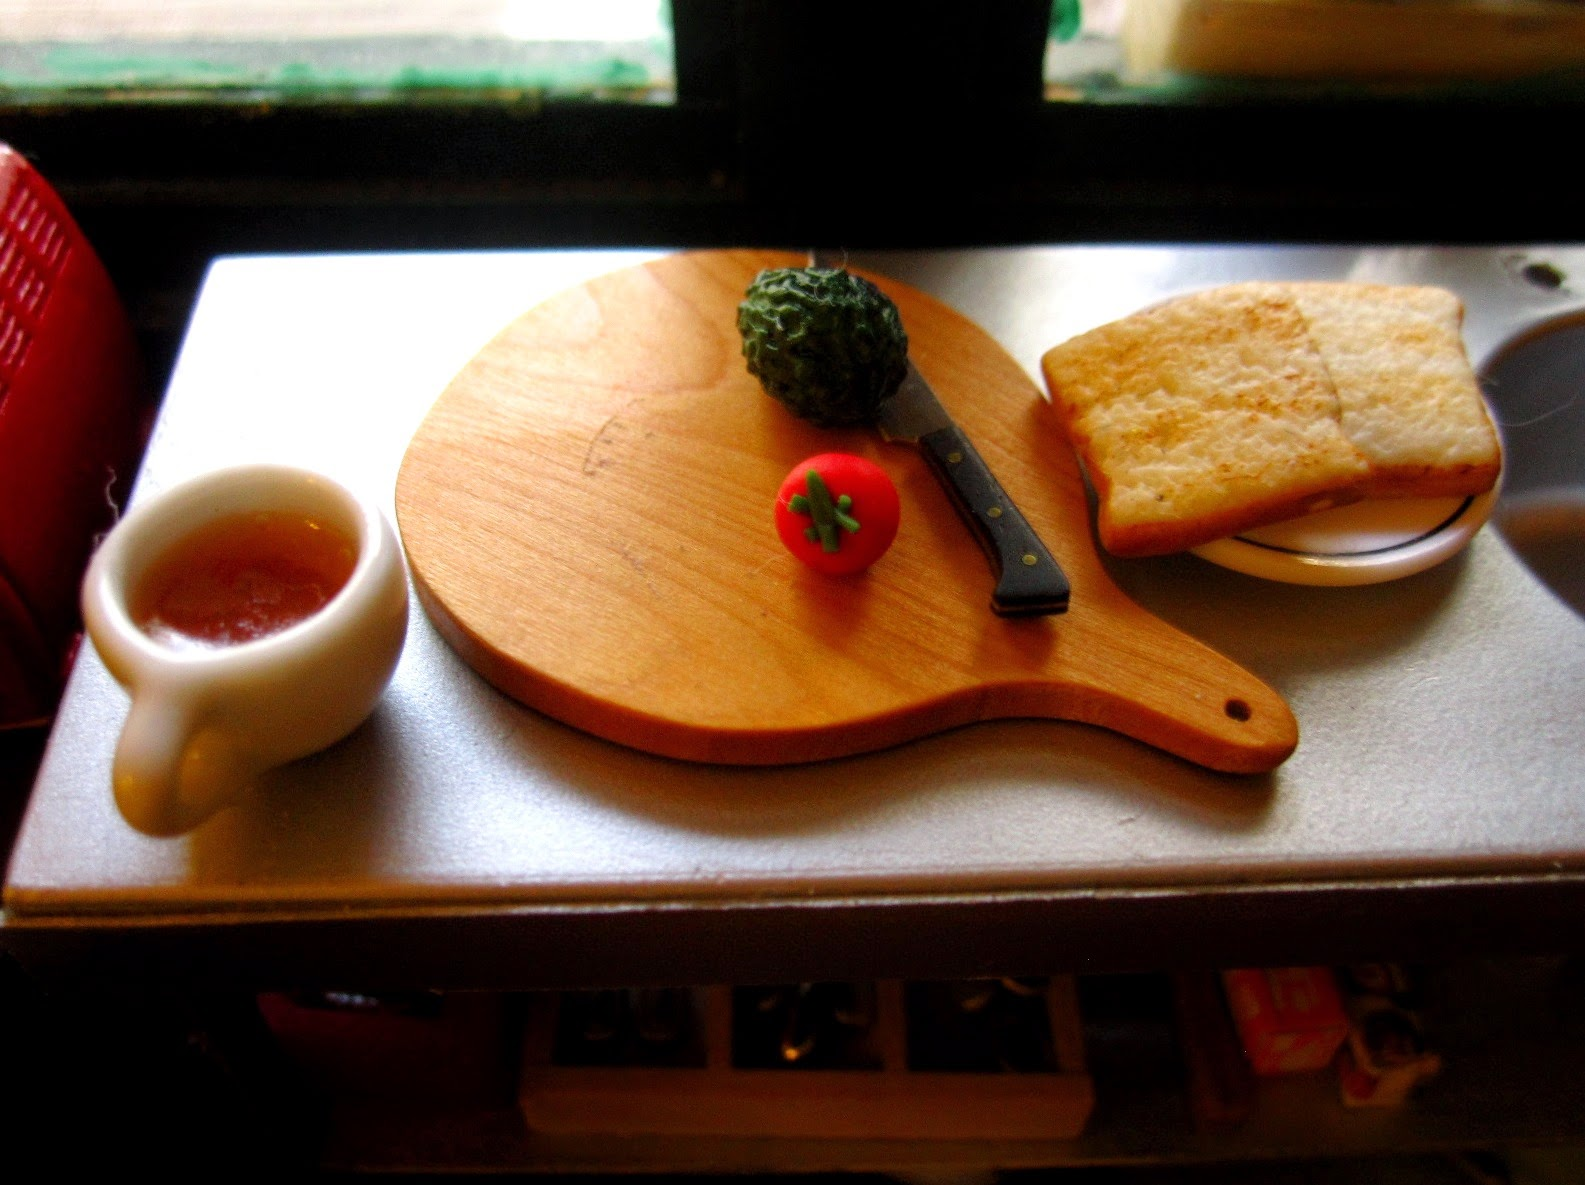 Modern dolls' house miniature stainless steel bench with a chopping board with a knife, an avocado and a tomato on it. Next to it is a plate of toast and a mug of tea.